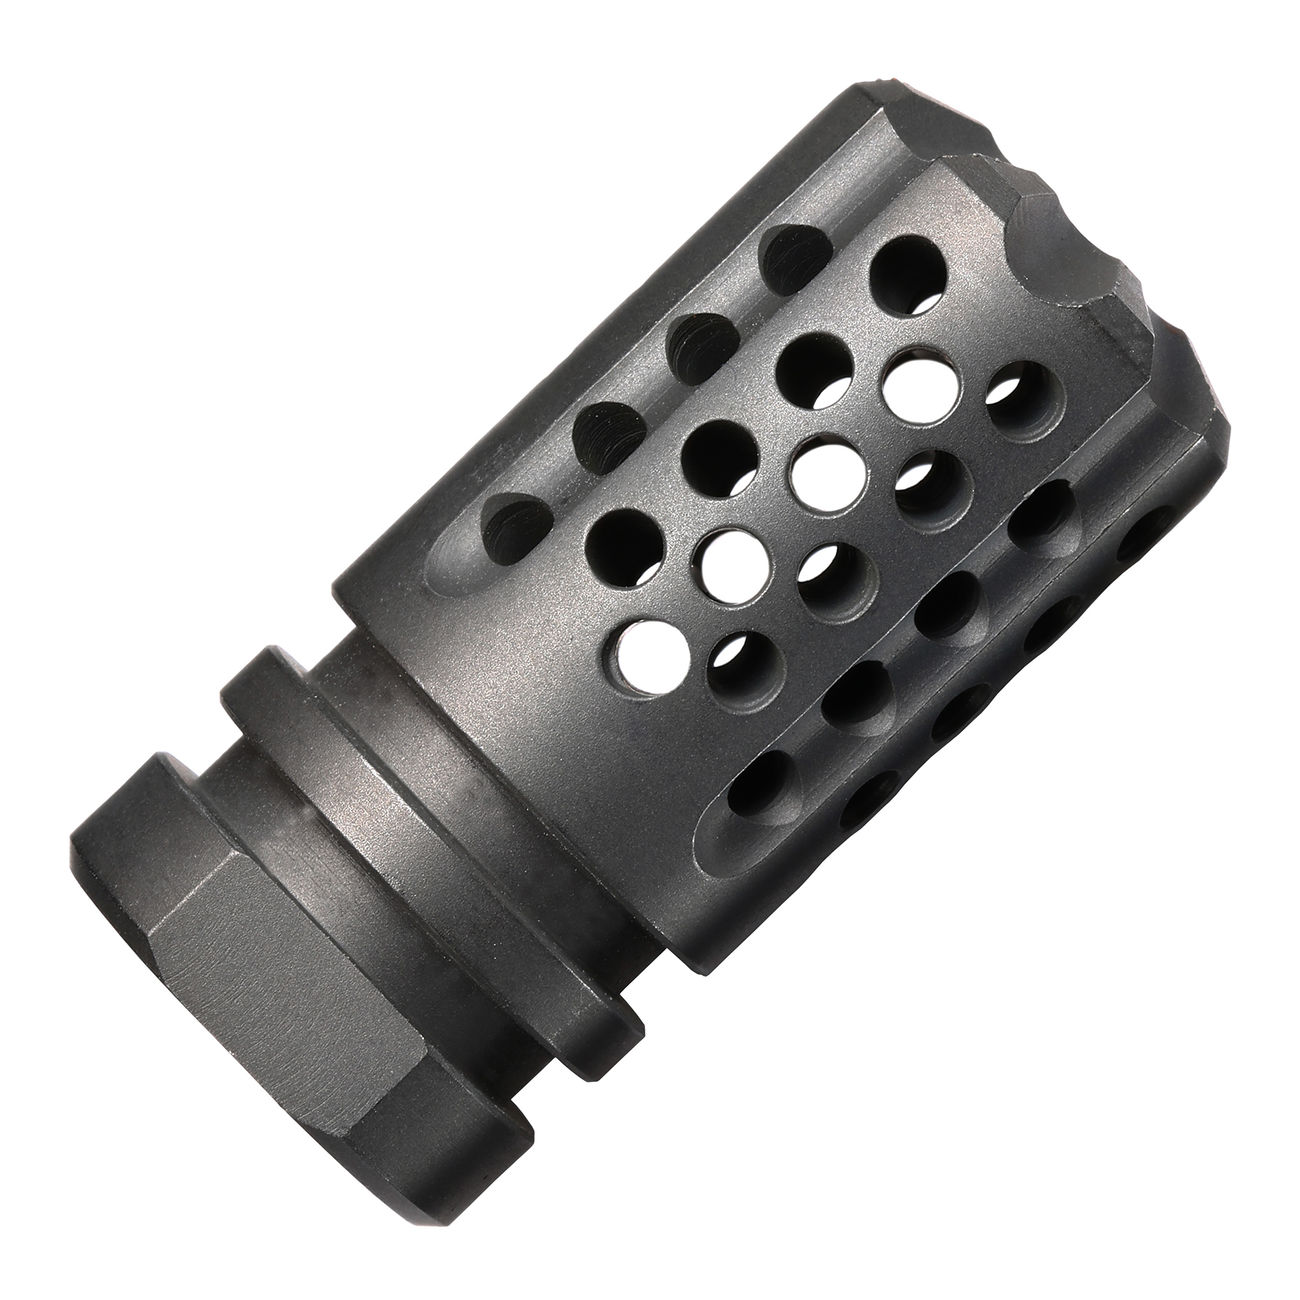 Dytac / SLR Stahl Synergy Mini Compensator Flash-Hider stahlgrau 14mm- 4